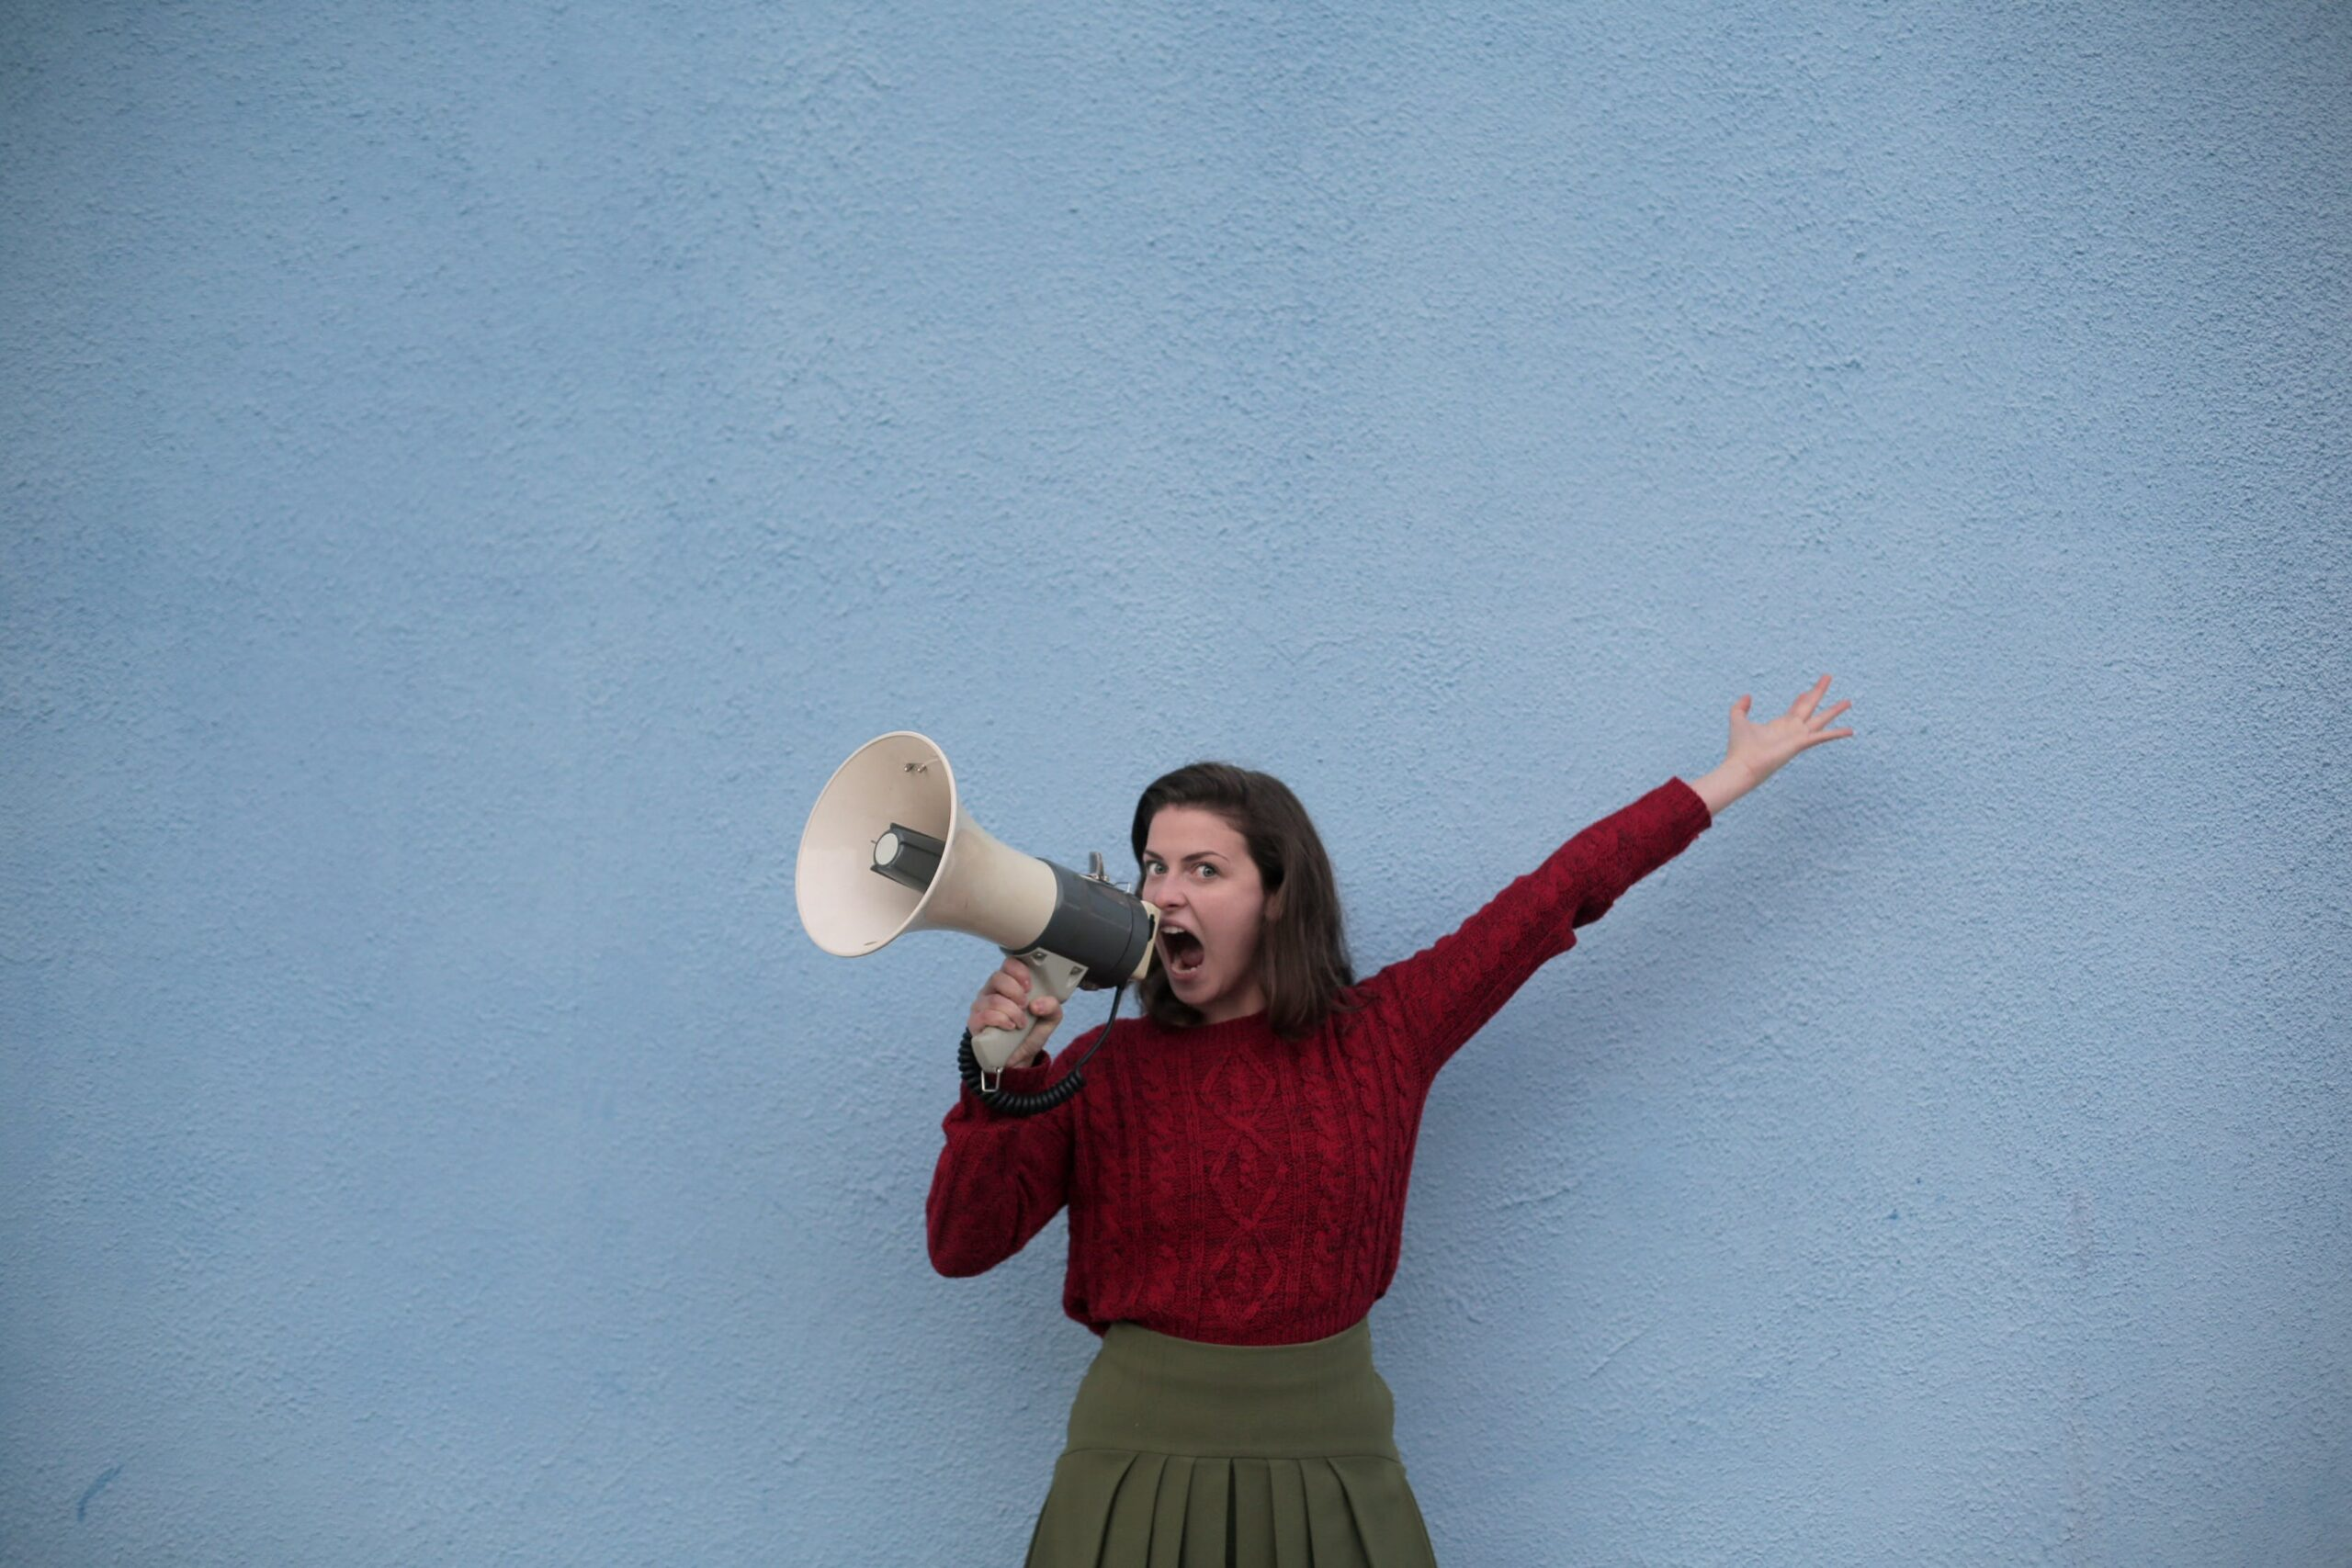 Woman shouting into her megaphone, looking at the camera in front of a muddy-blue wall, her left hand raised above her head. She's wearing a green skirt and a red jumper and she has a very intense look on her face, with her brown hair cut at her shoulders. This image was repurposed to represent using the correct voice and tone.